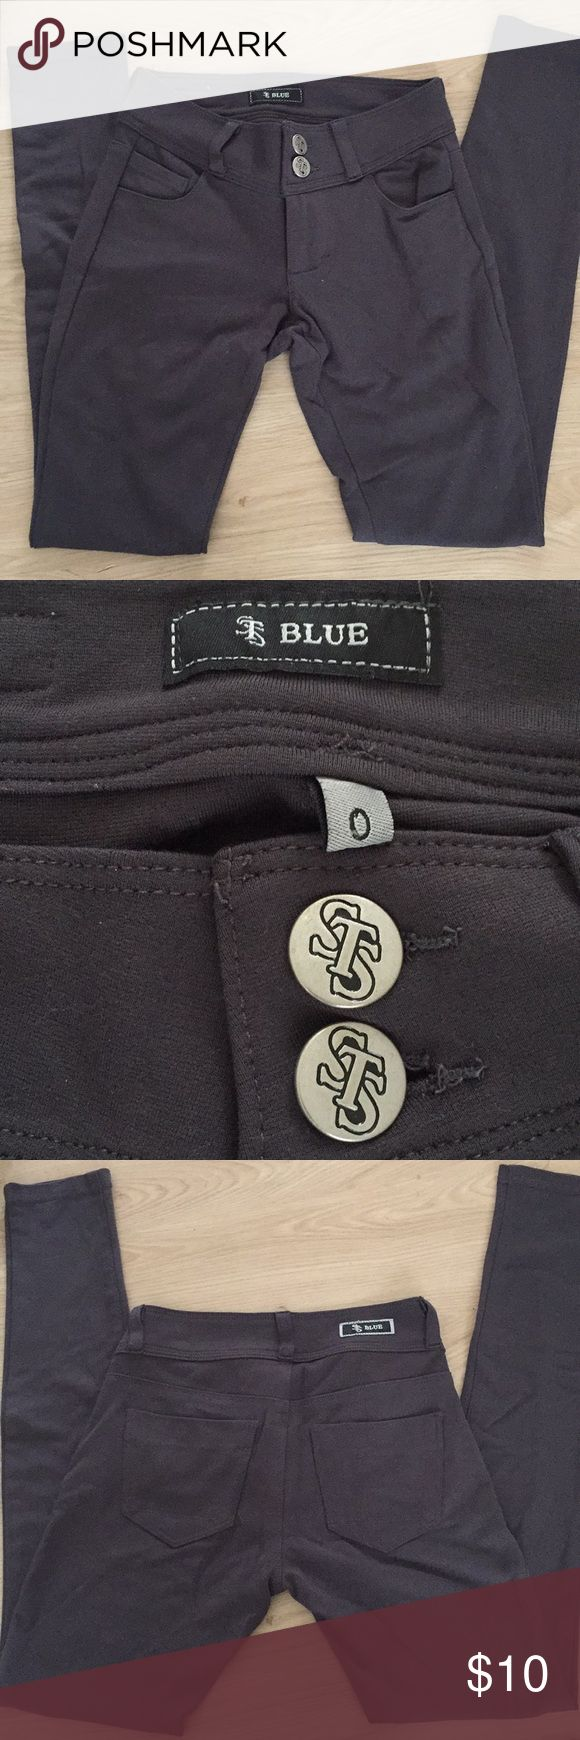 STS Blue Charcoal Leggings Super cute and look like actual pants because of the pockets and belt loops! Hardly worn, size 0. STS Blue Pants Skinny